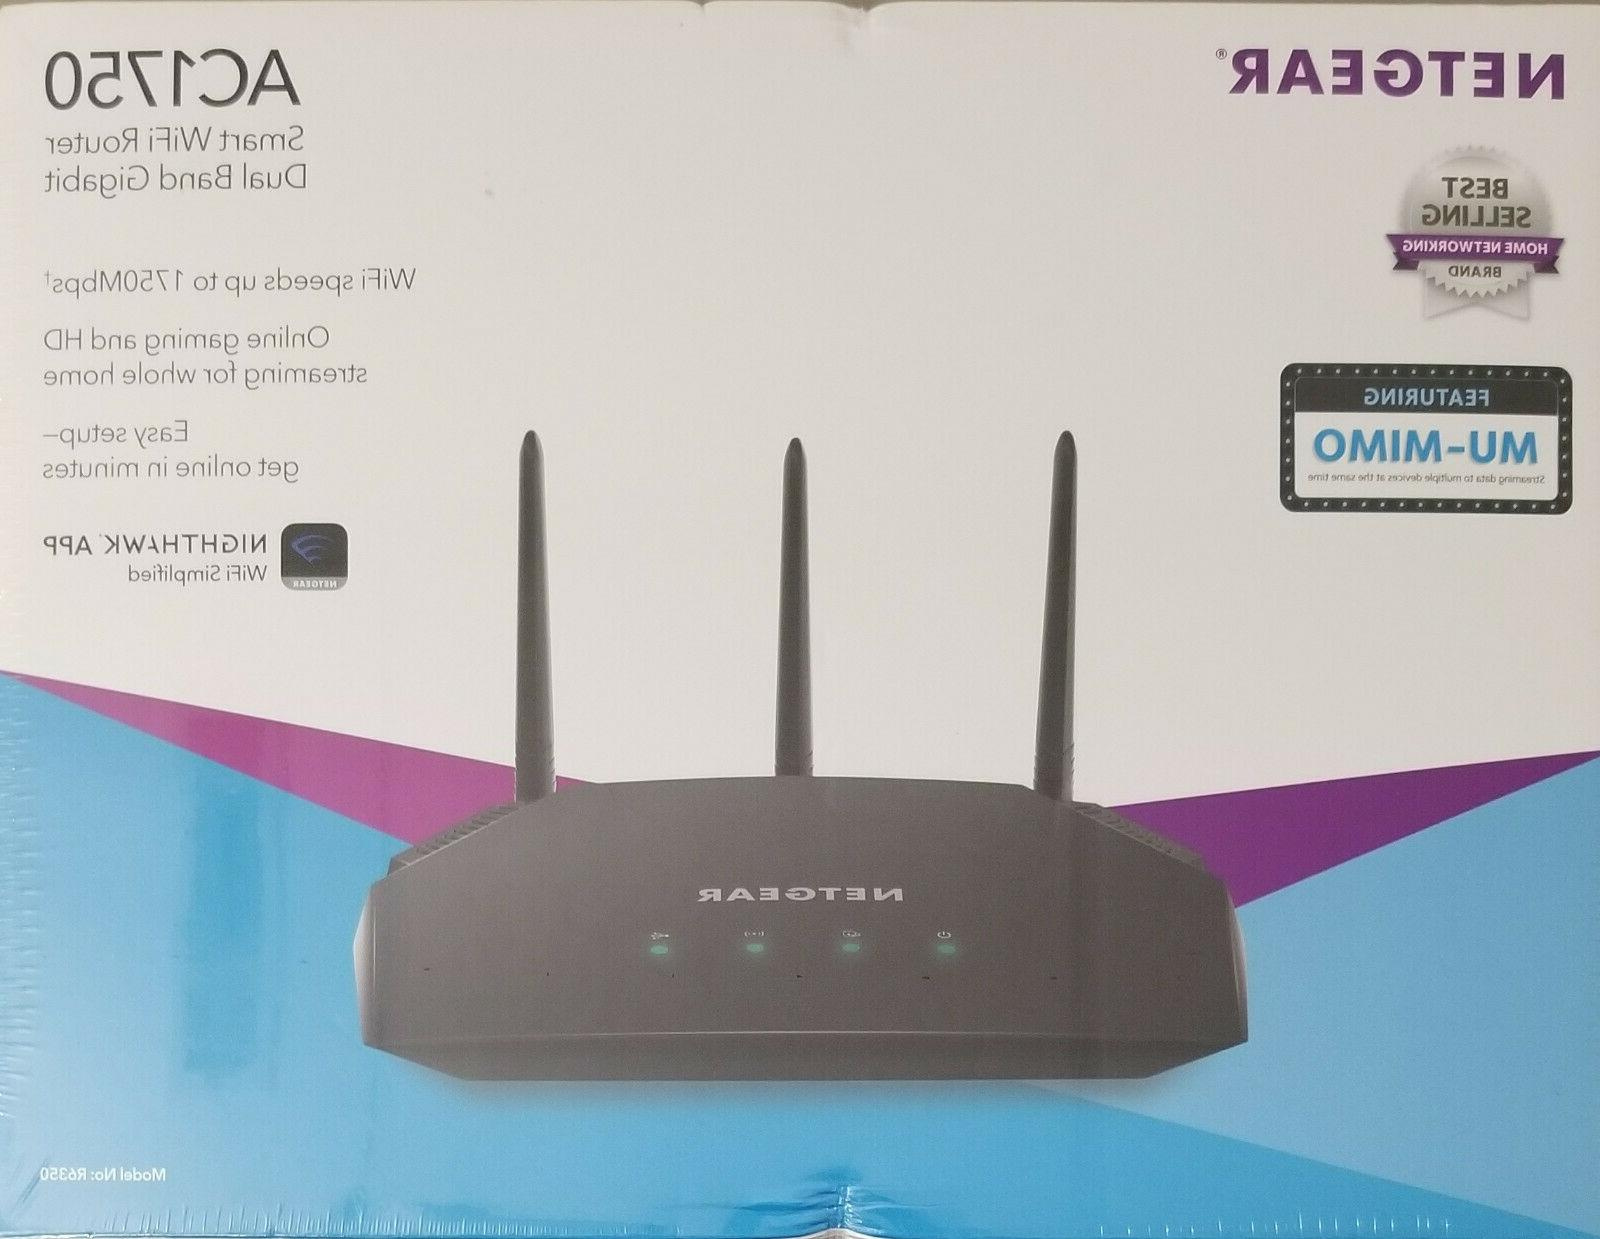 ac1750 dual band smart wifi router 5